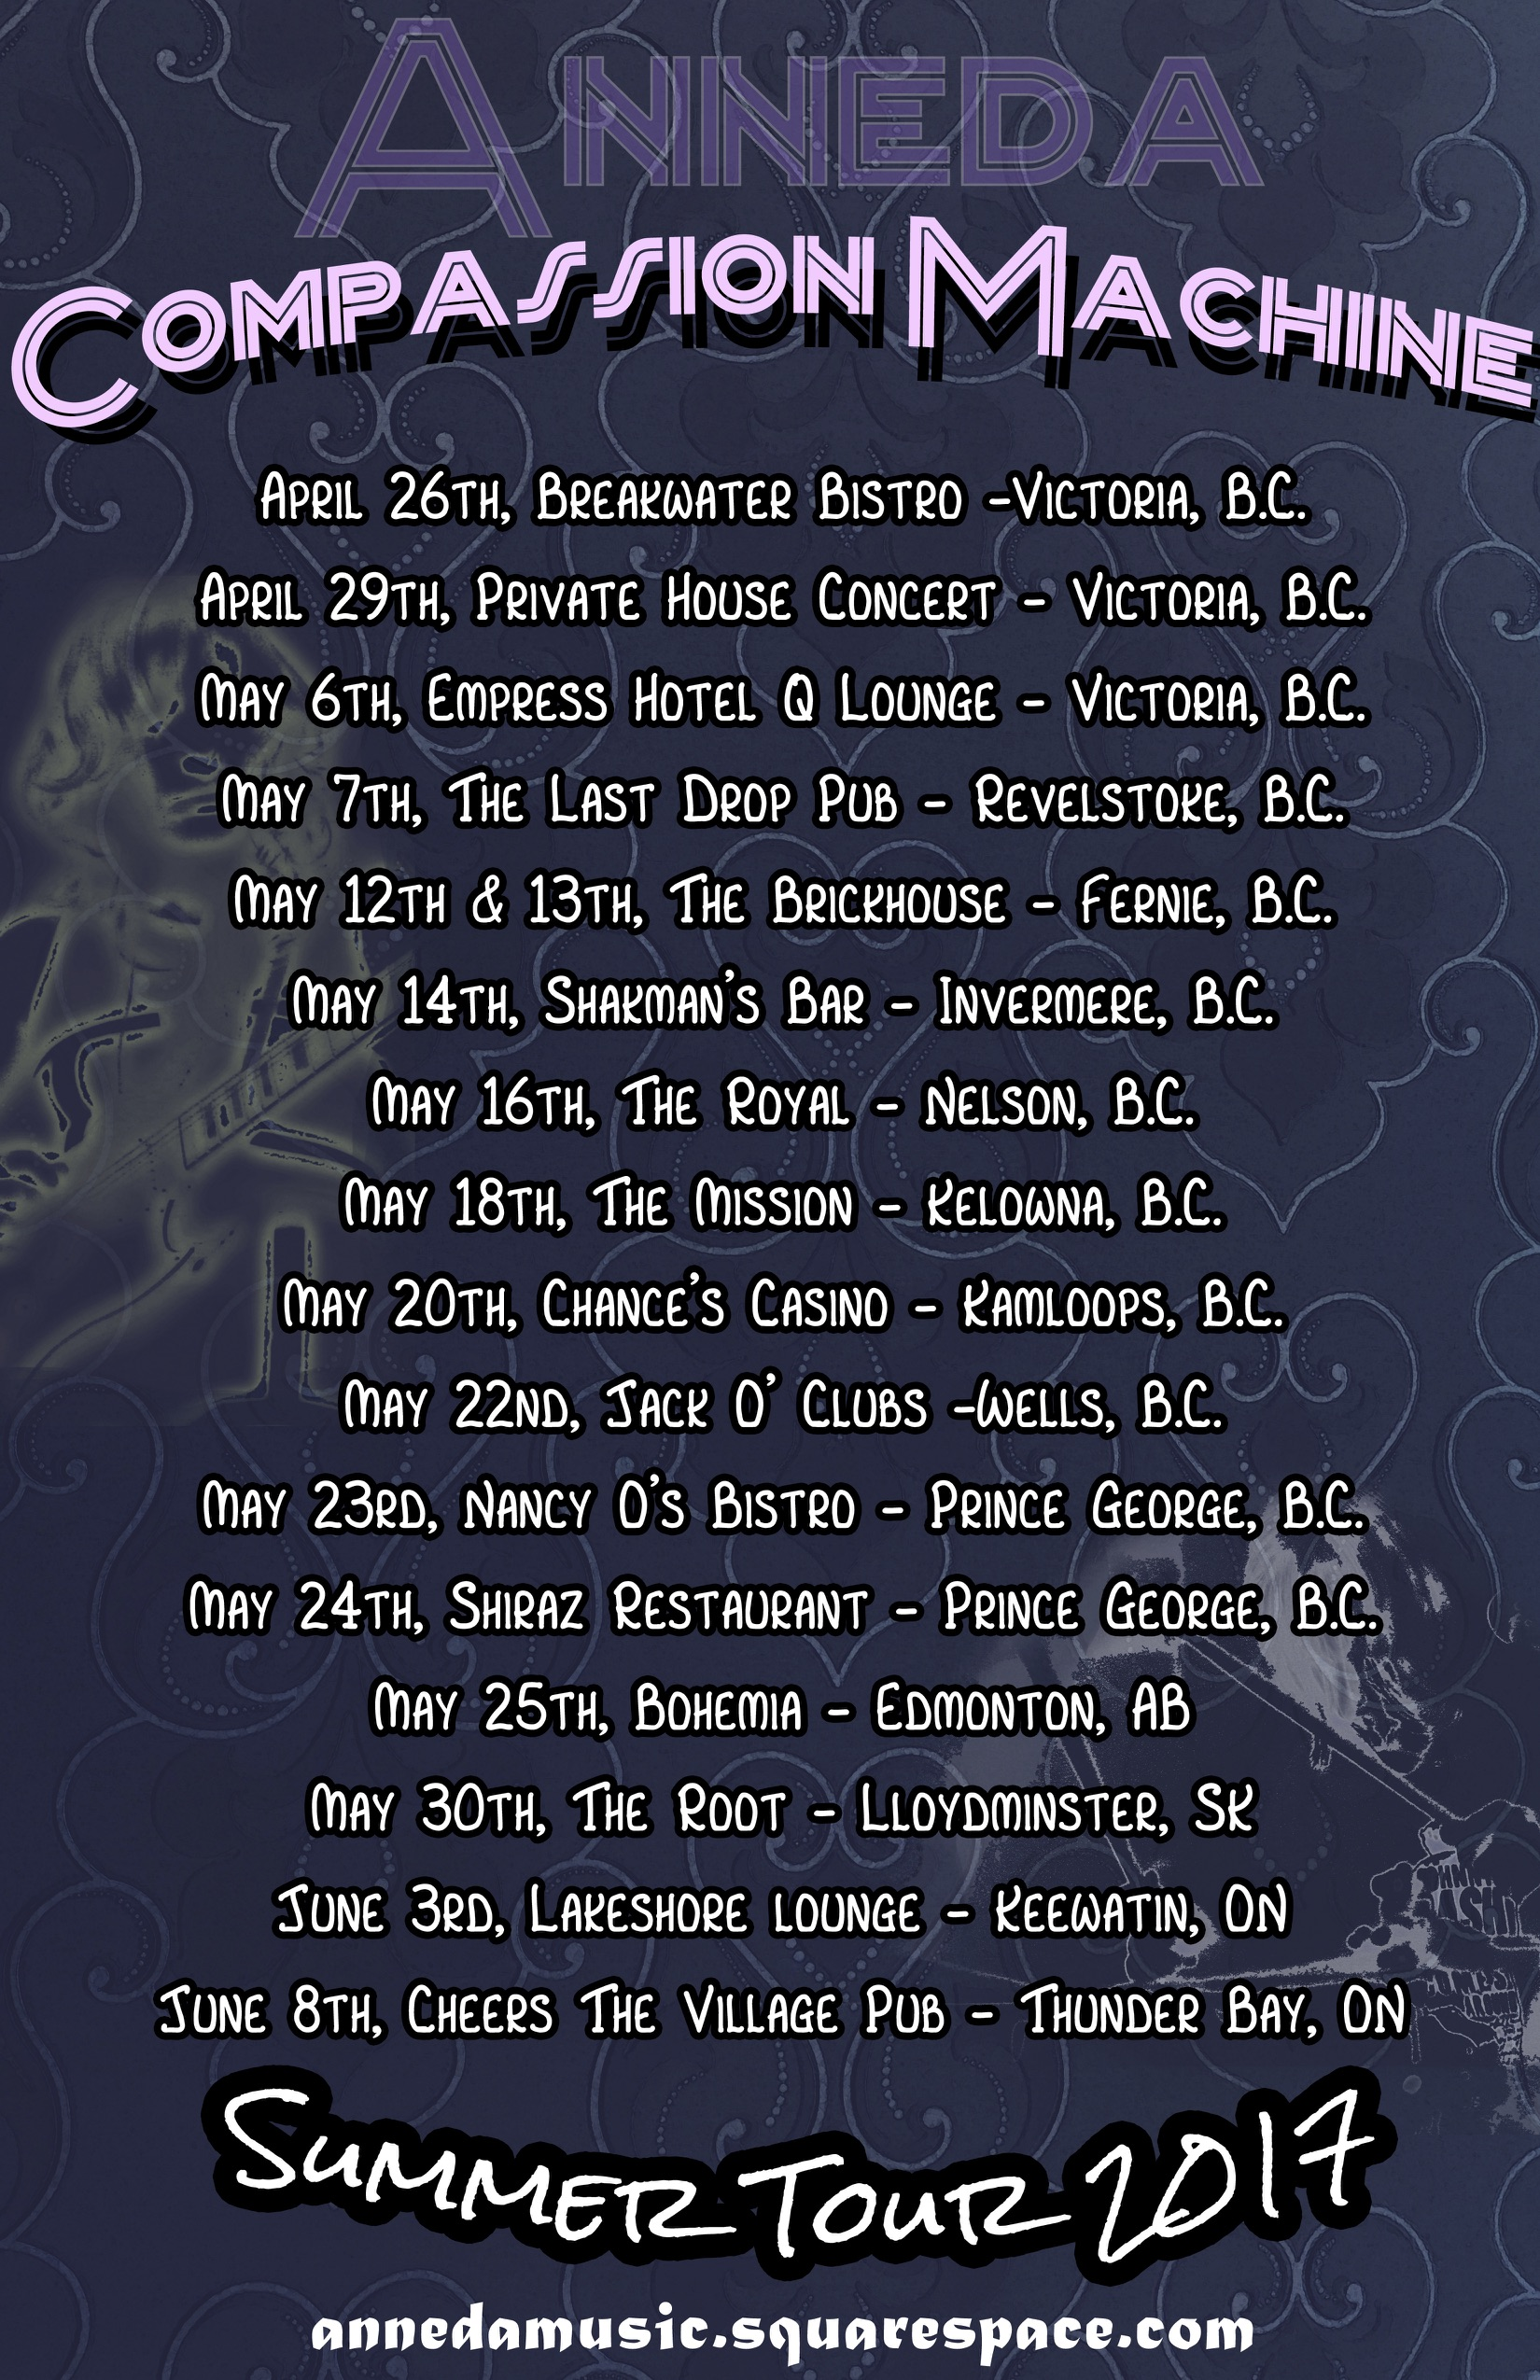 ROCK DUO ANNOUCES COAST TO COAST CANADIAN TOUR -  FOR IMMEDIATE RELEASE: 4/13/17Compassion Machine follows up their 2016 Summer tour supporting full-length albumVictoria, BC: Celestial, psychadelic, and super-charged rock and roll duo Compassion Machine are ready for the road again. After a successful series of shows last August that took them from Vancouver Island to Saskatchewan, this Summer 2017 the band is adding Eastern Canada to the circuit including gigs in Ontario, Quebec, and the Maritime Provinces. The tour begins in May through to the end of June with dates being added daily.Compassion Machine is the new name of a quickly evolving project consisting of lead vocalist/guitarist Charlene Birkbeck and drummer Lucas McKinnon. Previously known as Anneda, this group has returned from a season in Australia writing and performing new material that is surging with contagious energy and exuberance. Having released their first full-length album, Depths Unknown, last summer, they are already set to record their next release this upcoming fall.For tour dates, visit our website www.annedamusic.com, Facebook page, Instagram, or email us at annedamusic@gmail.com.